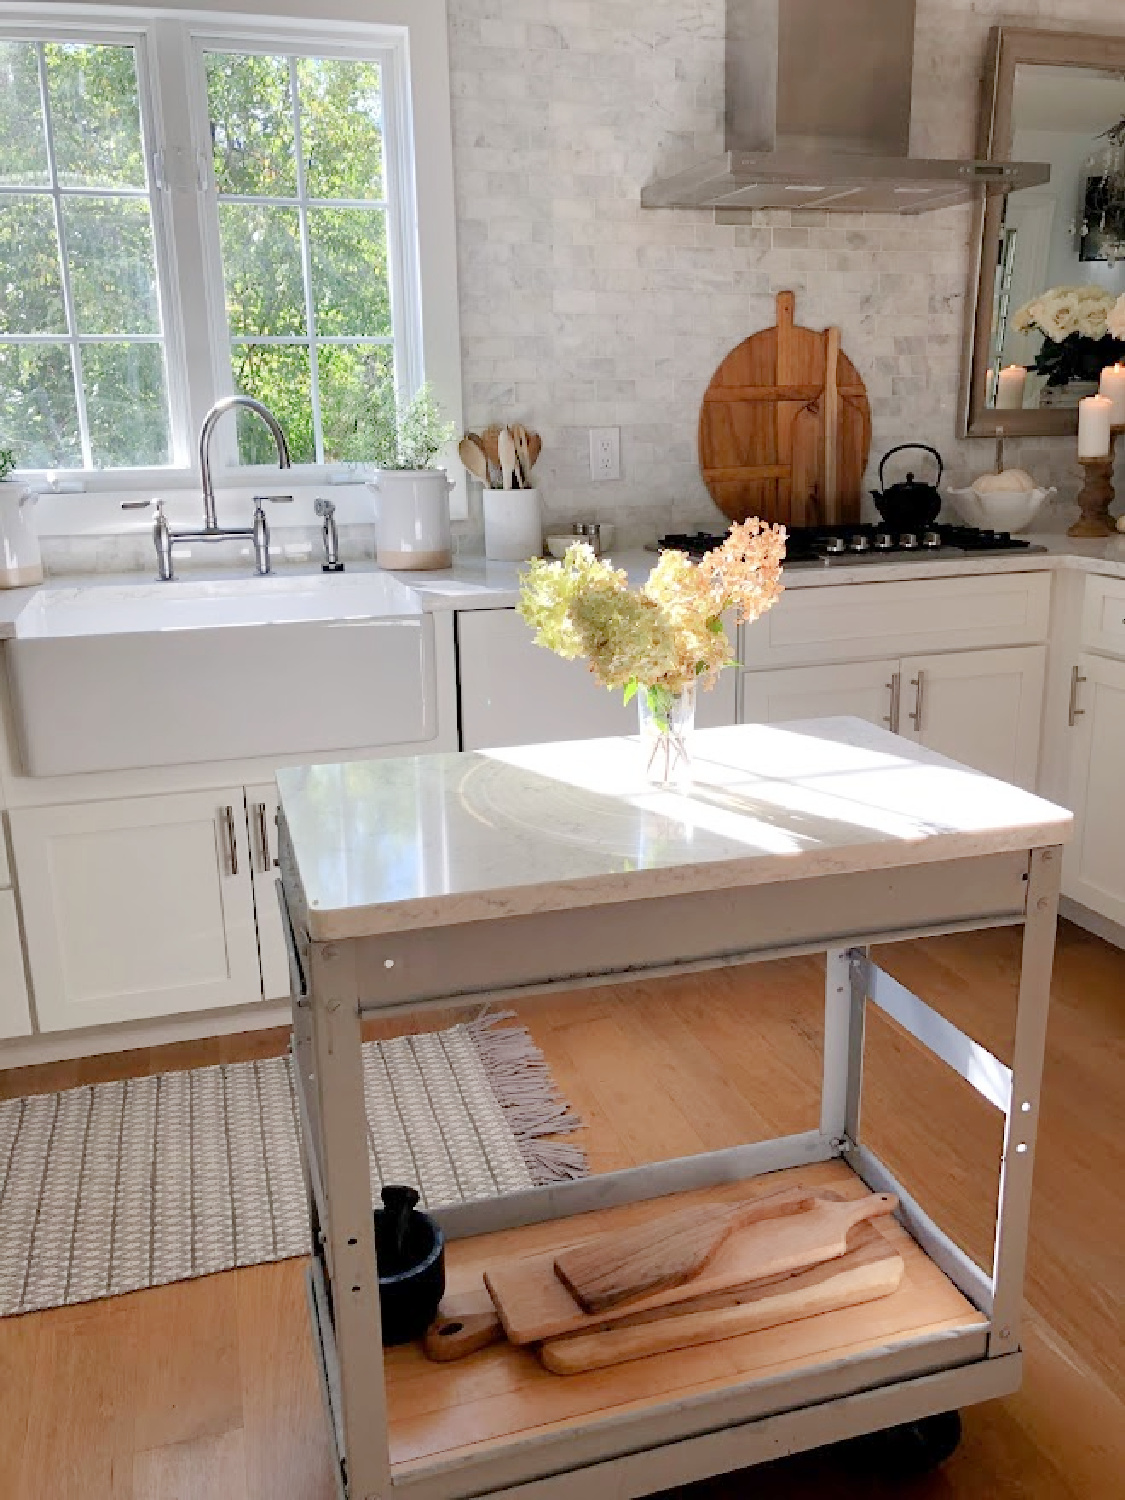 Serene white kitchen in early fall with hydrangea - Hello Lovely Studio.